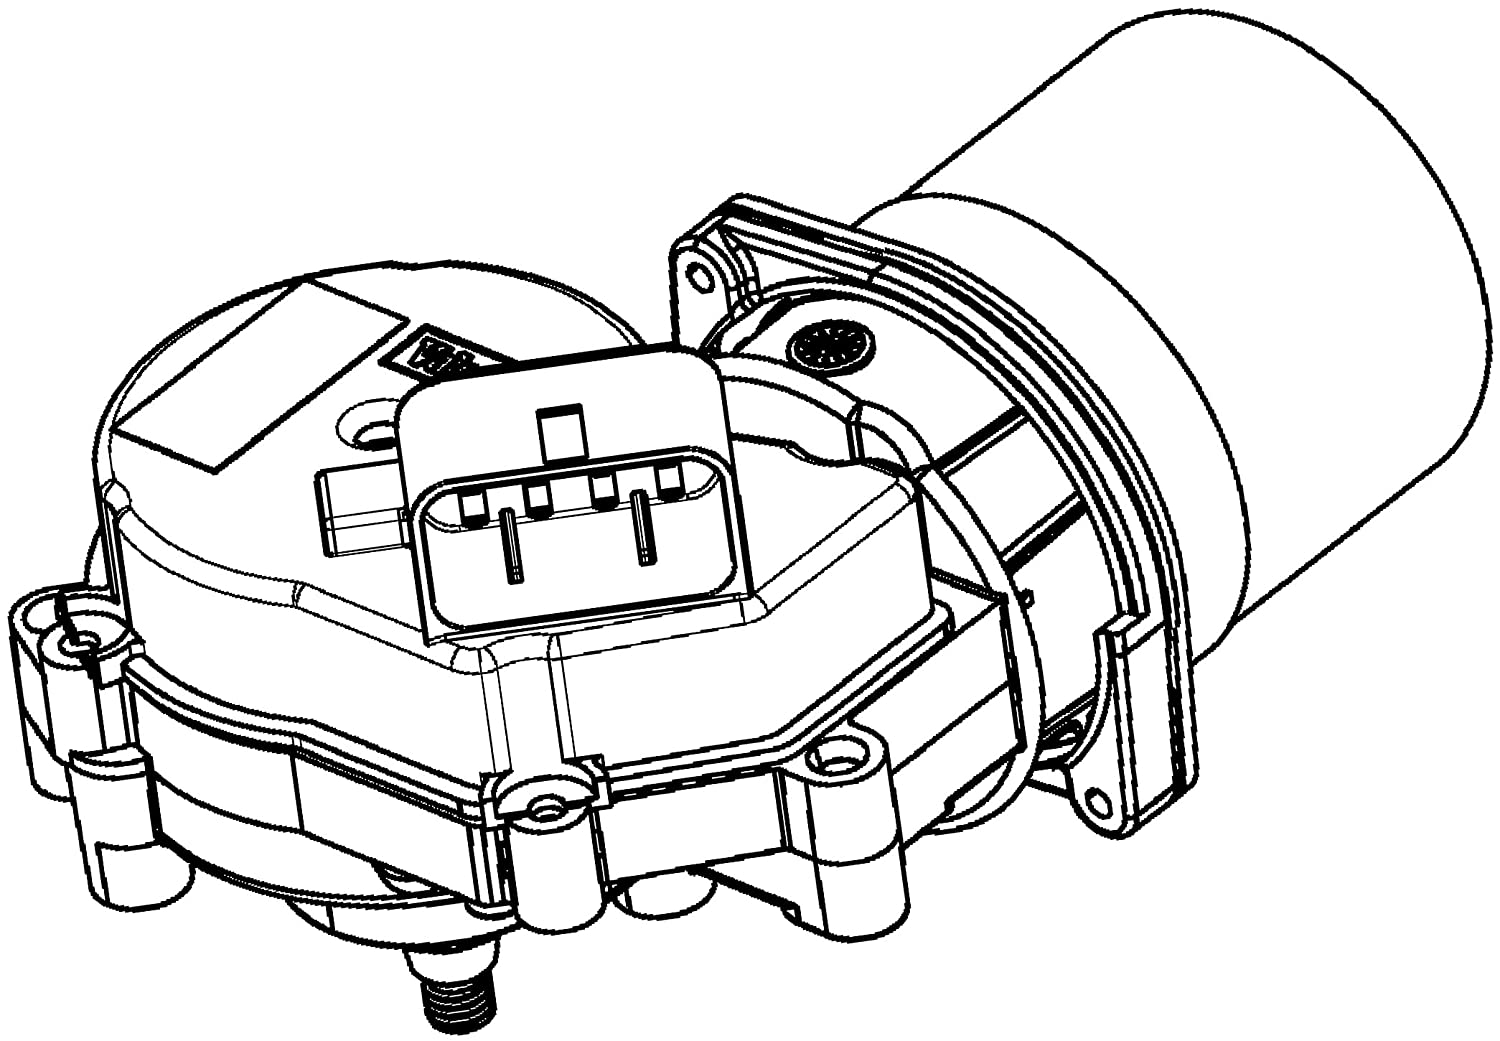 hella headlight wiring diagram